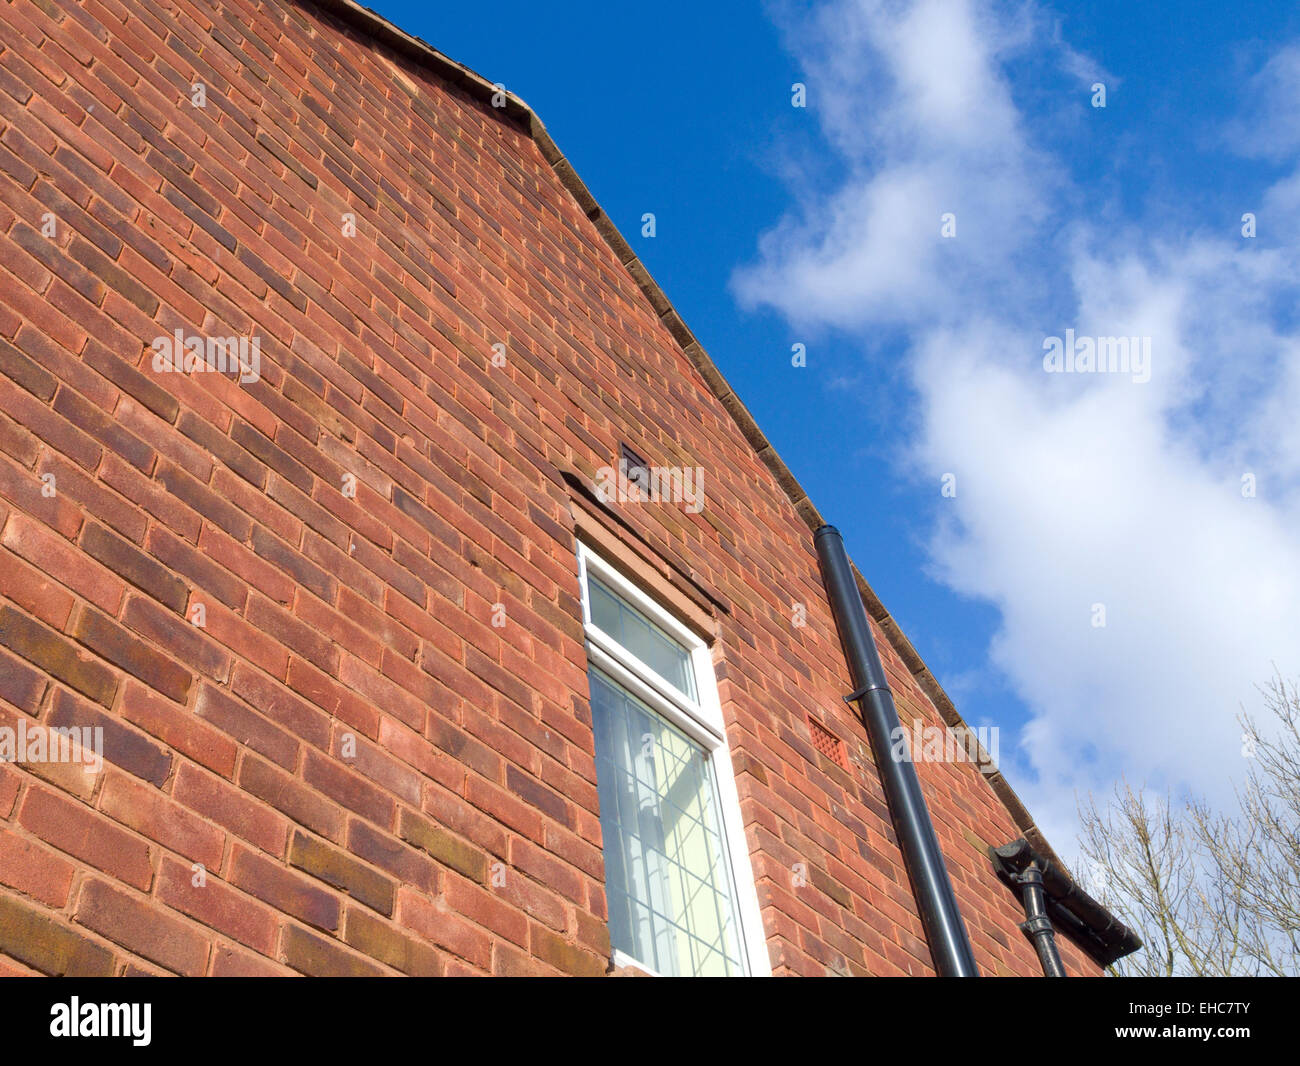 Gable End of a House With External Soil Pipe, UK PROPERTY RELEASED - Stock Image